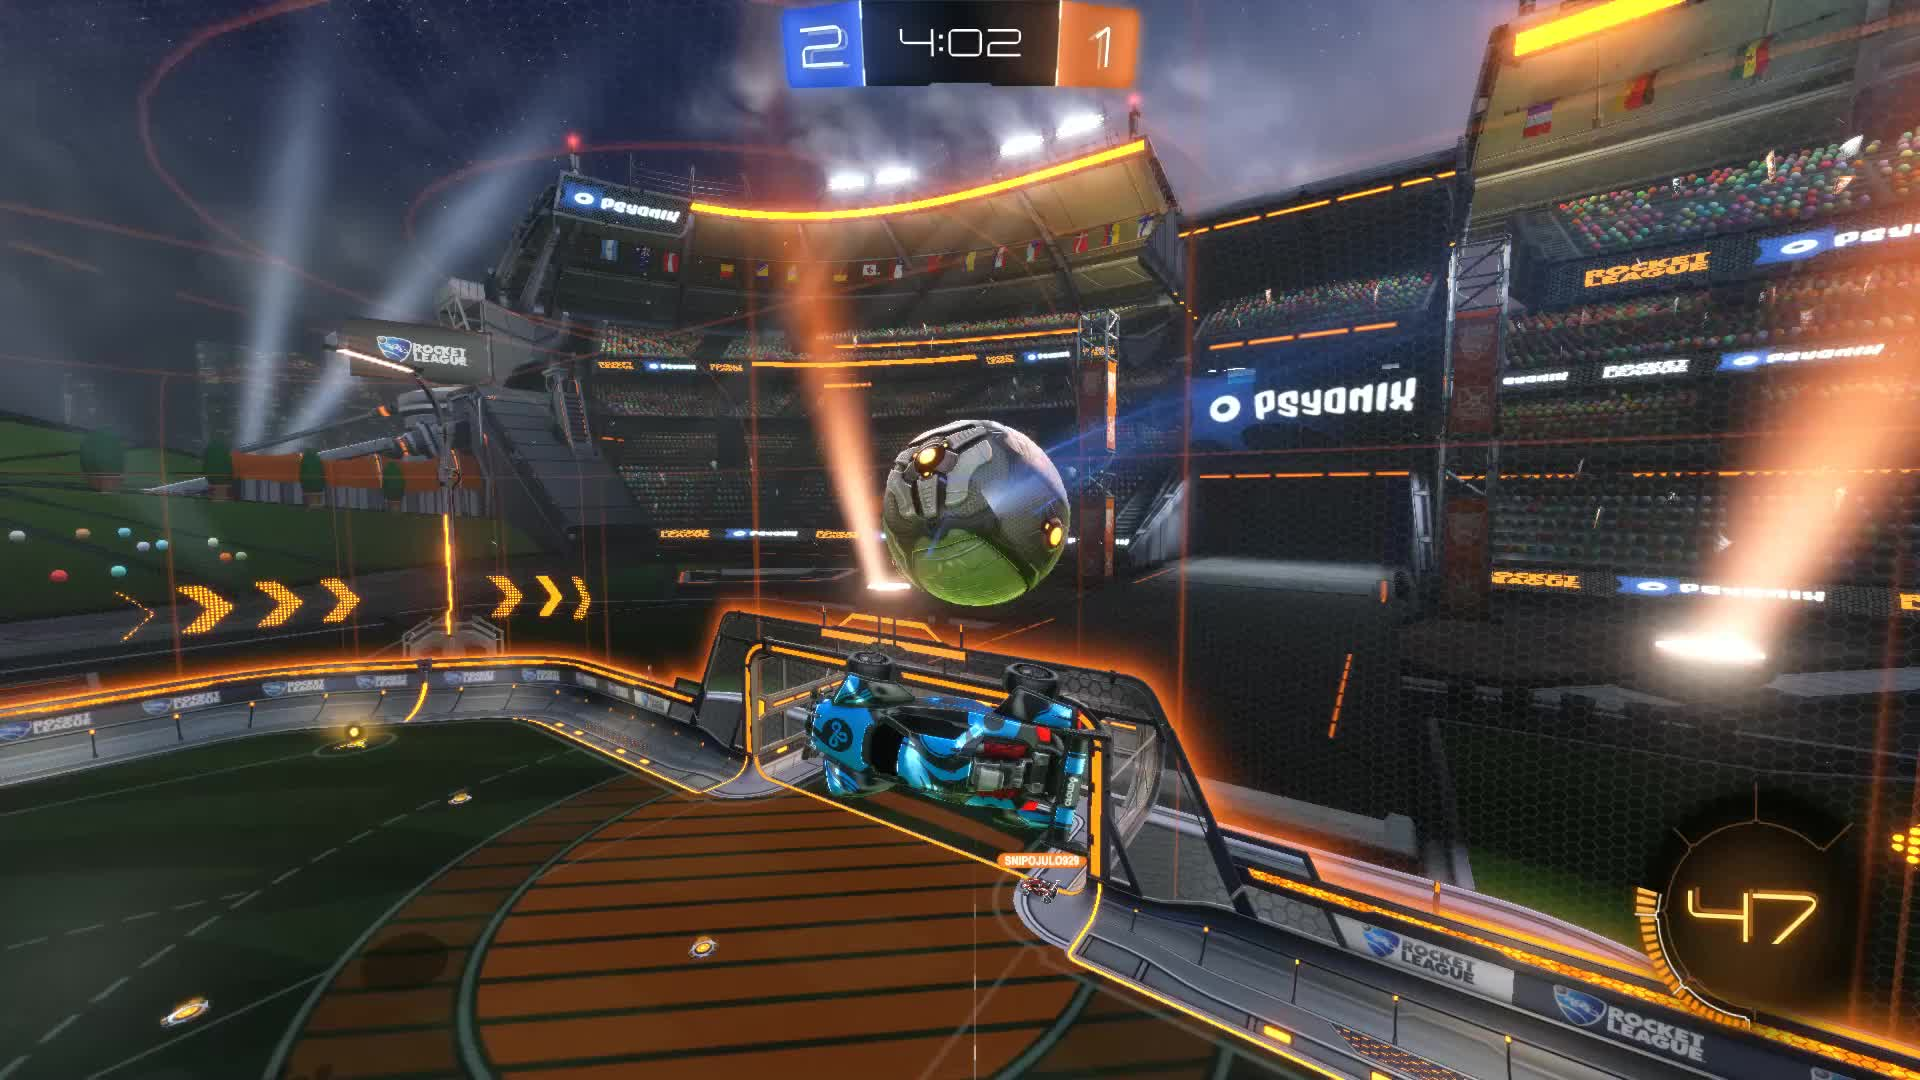 Gif Your Game, GifYourGame, Rocket League, RocketLeague, Shot, ✪ StiLLeR ?, Shot 4: ✪ StiLLeR ? GIFs